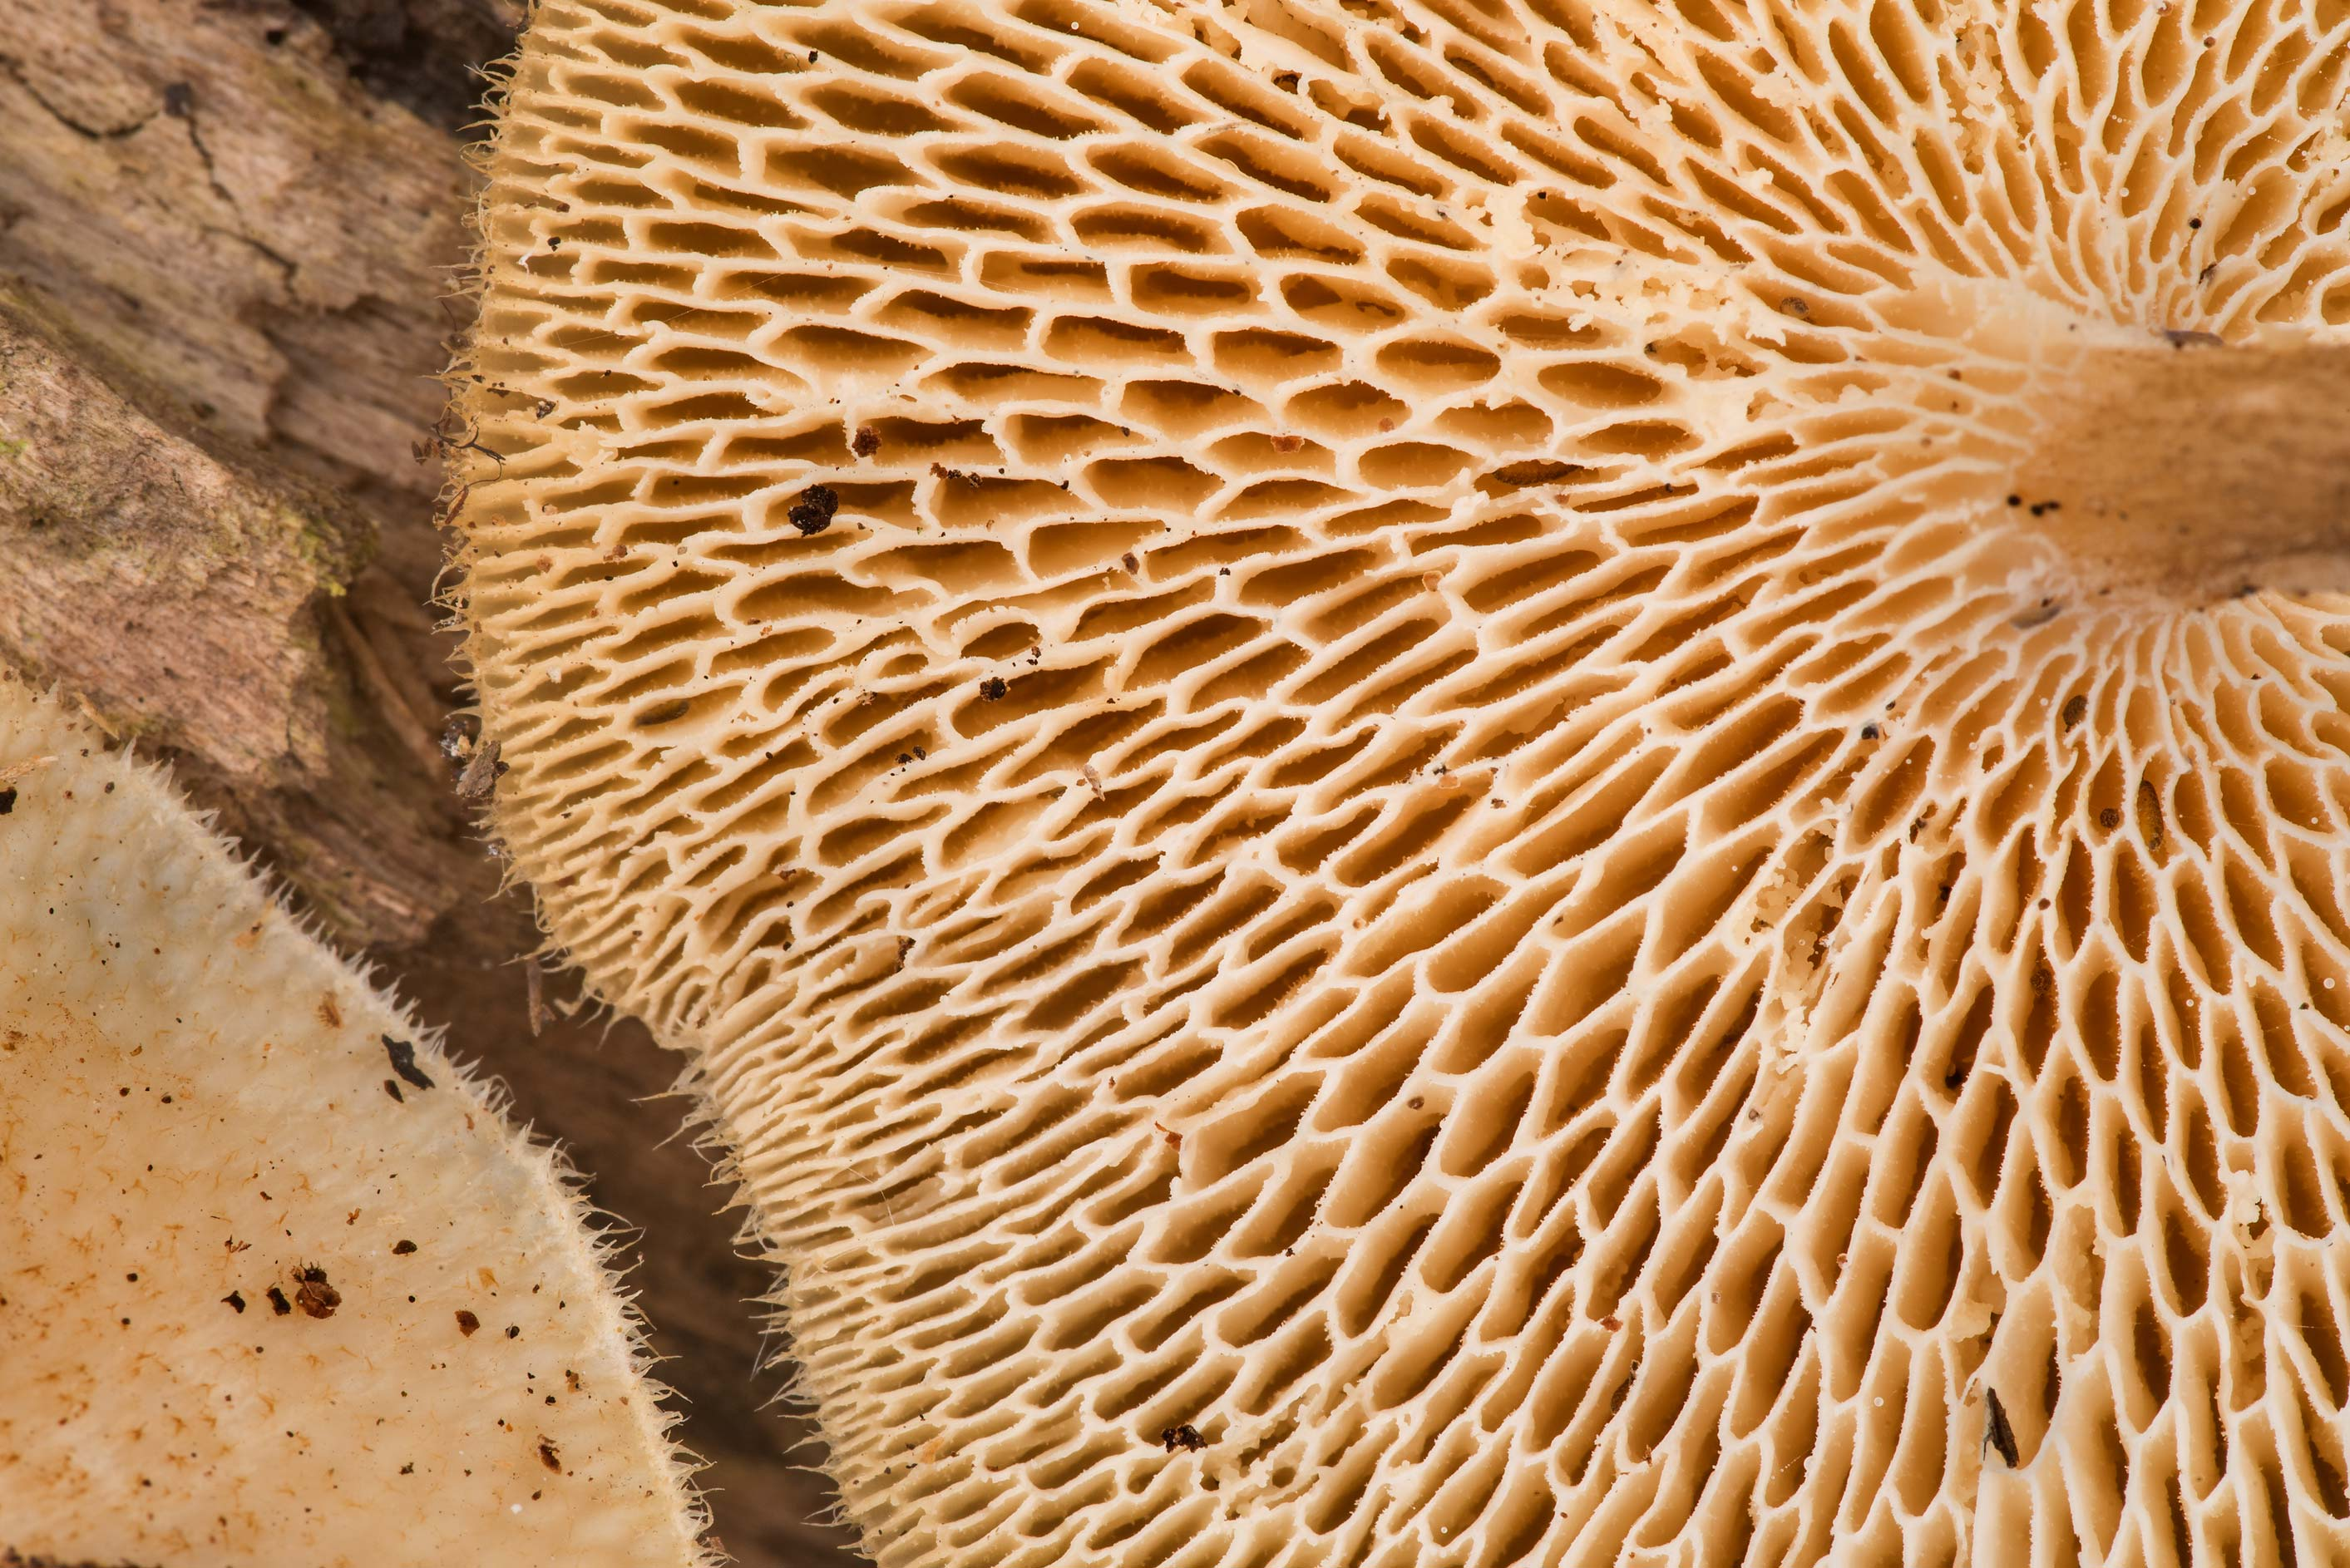 Underside of spring polypore mushrooms (Lentinus...Creek Park. College Station, Texas